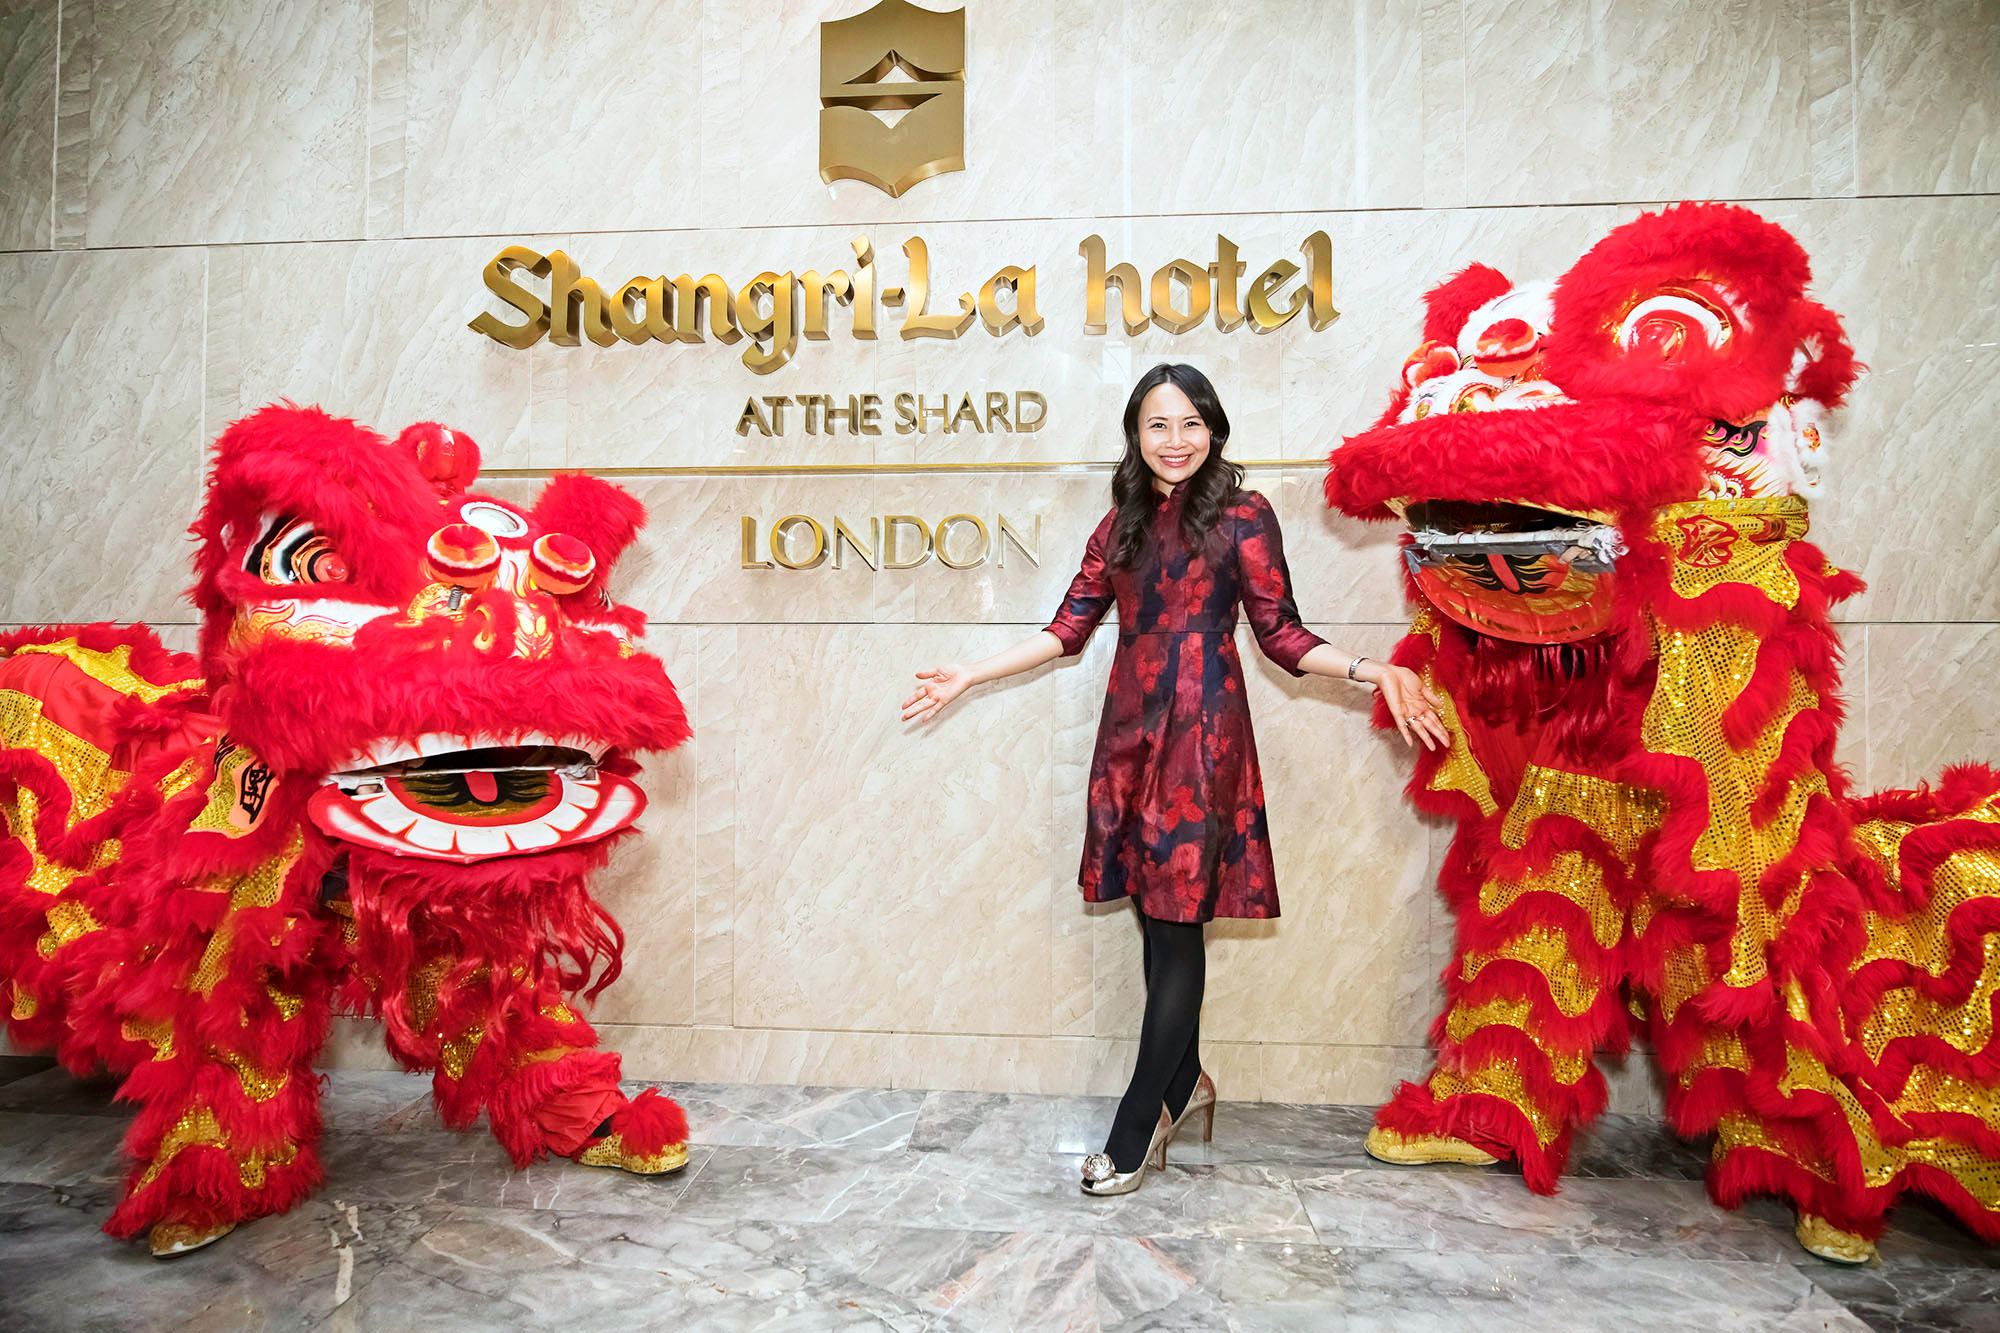 Jamie Ndah celebrates Chinese New Year in style at The Shard with celebrity Chef Ching He Huang